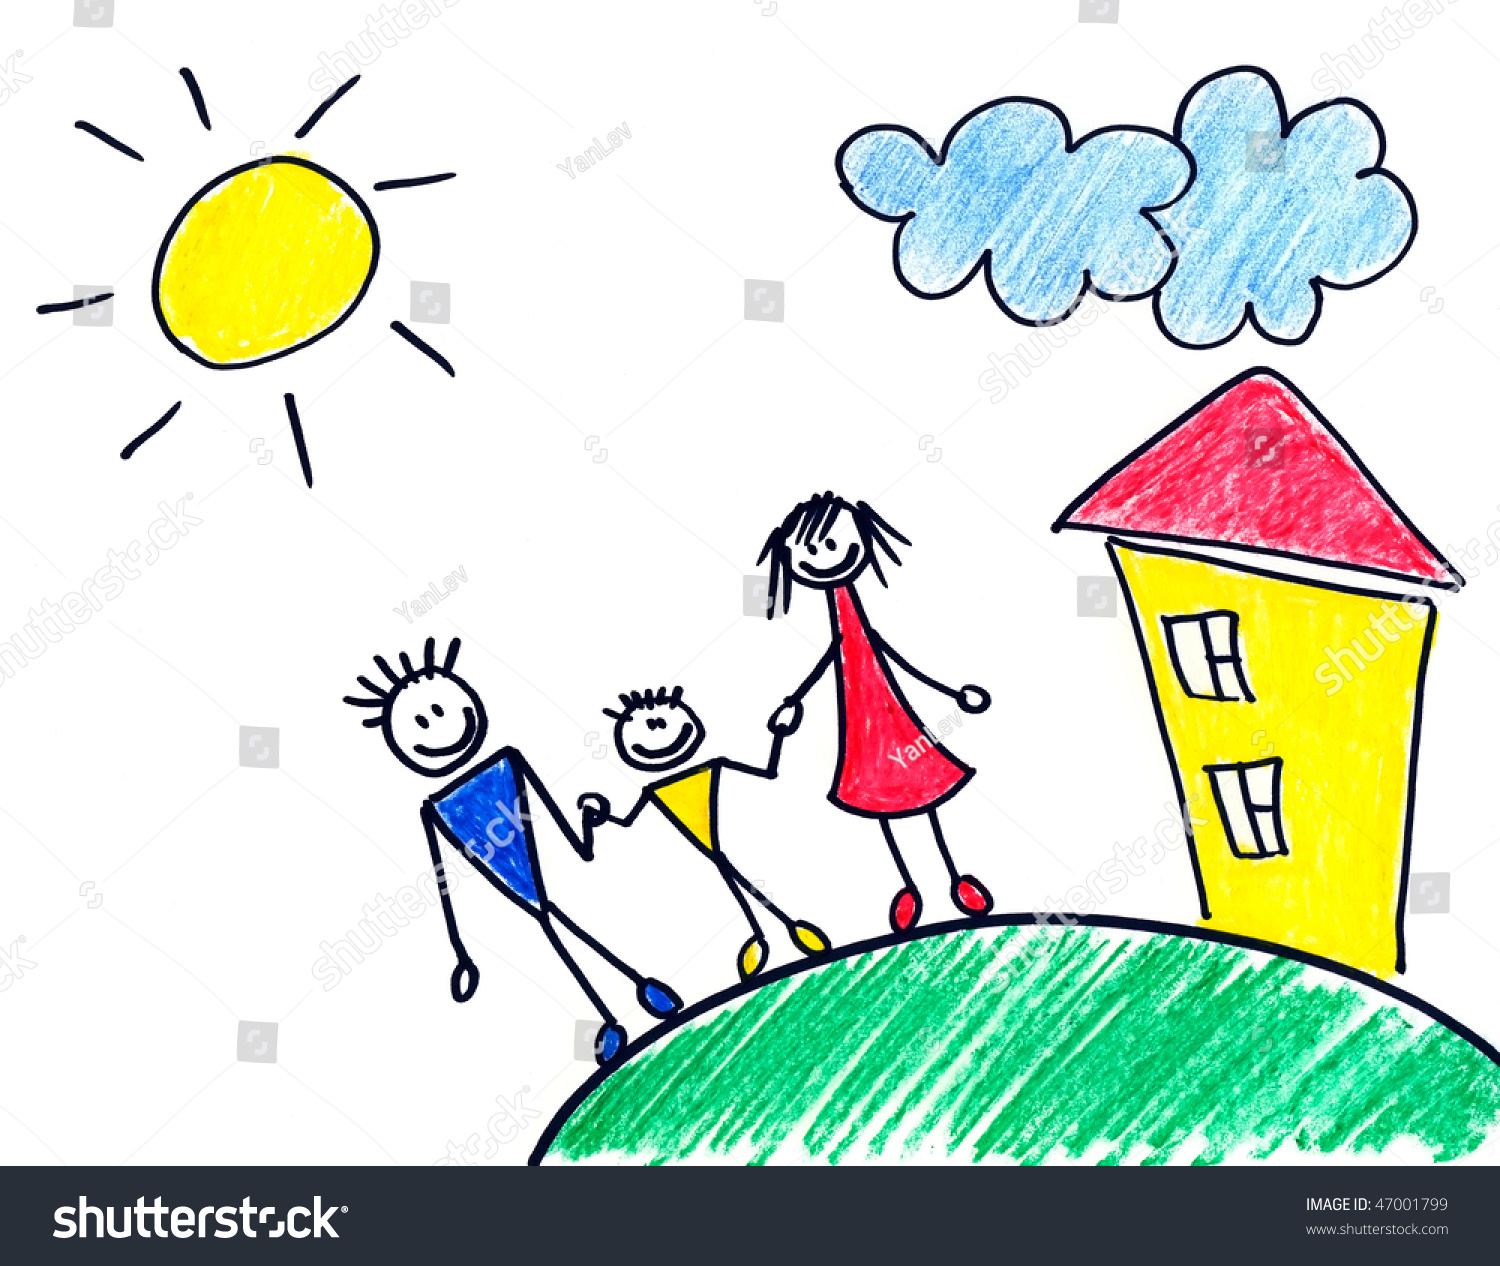 Children'S Drawing Of Happy Family About Small House Stock ...